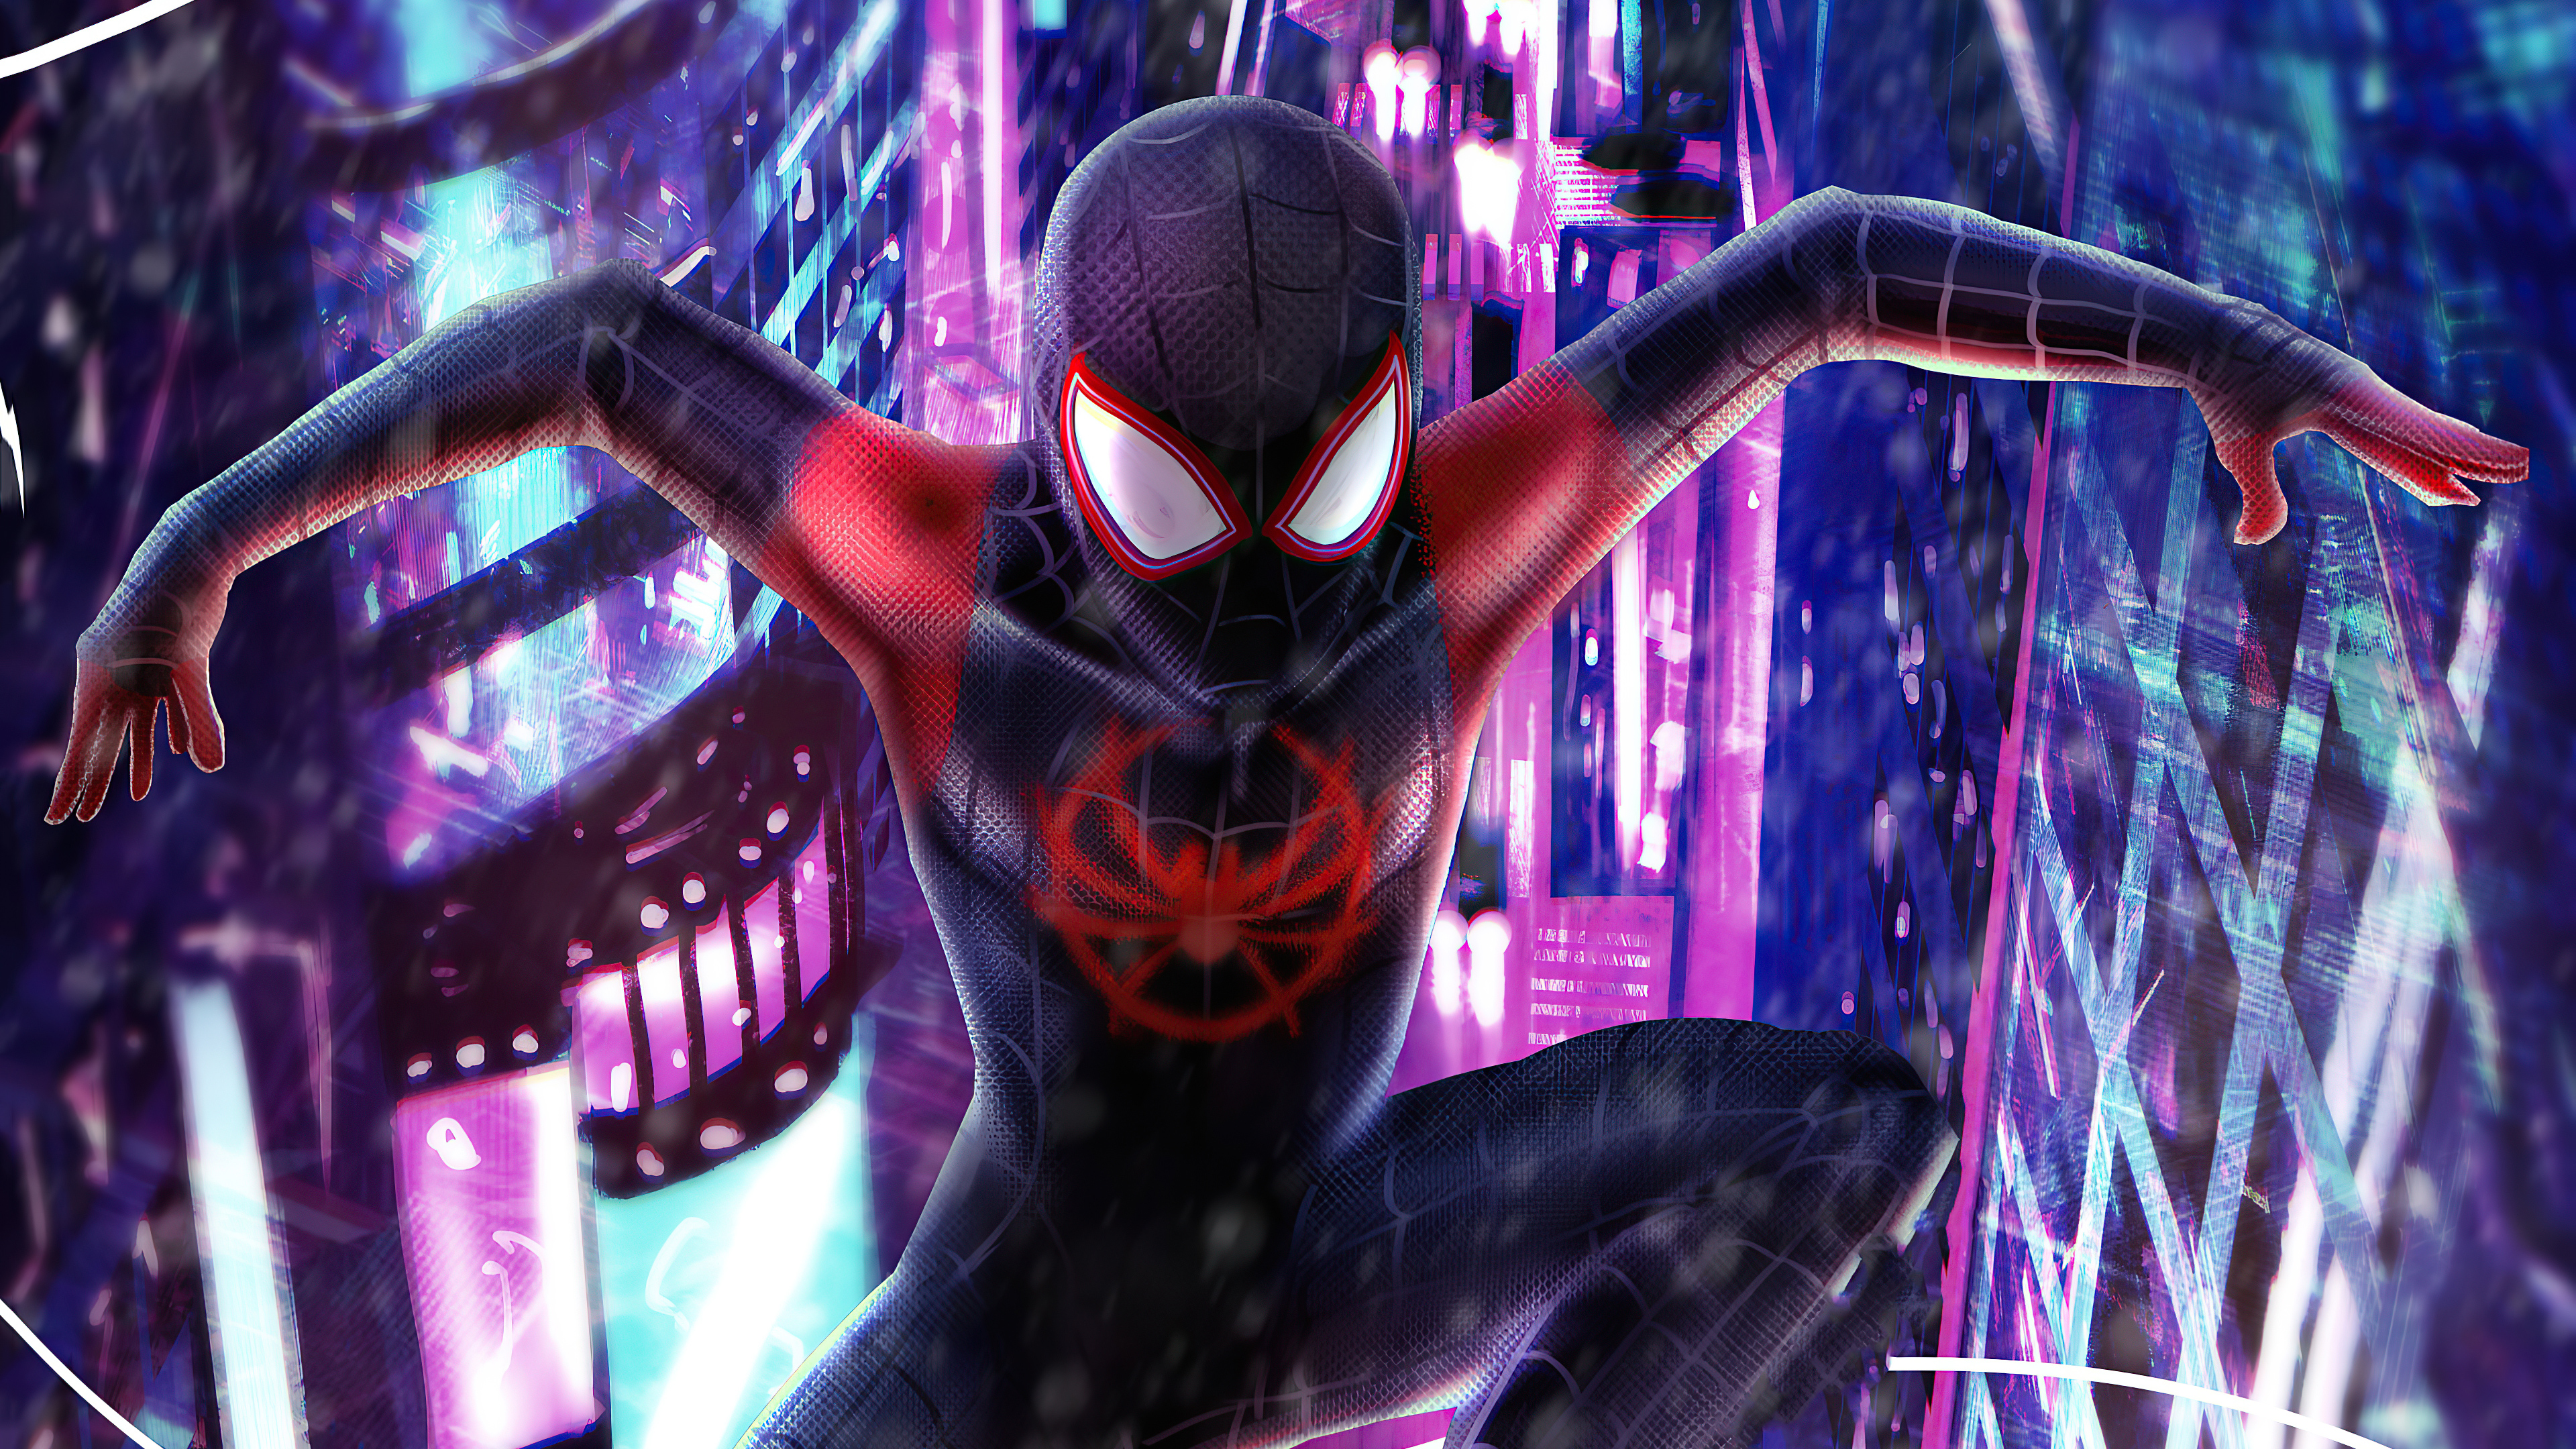 Wallpaper Spiderman in the city Ilustration